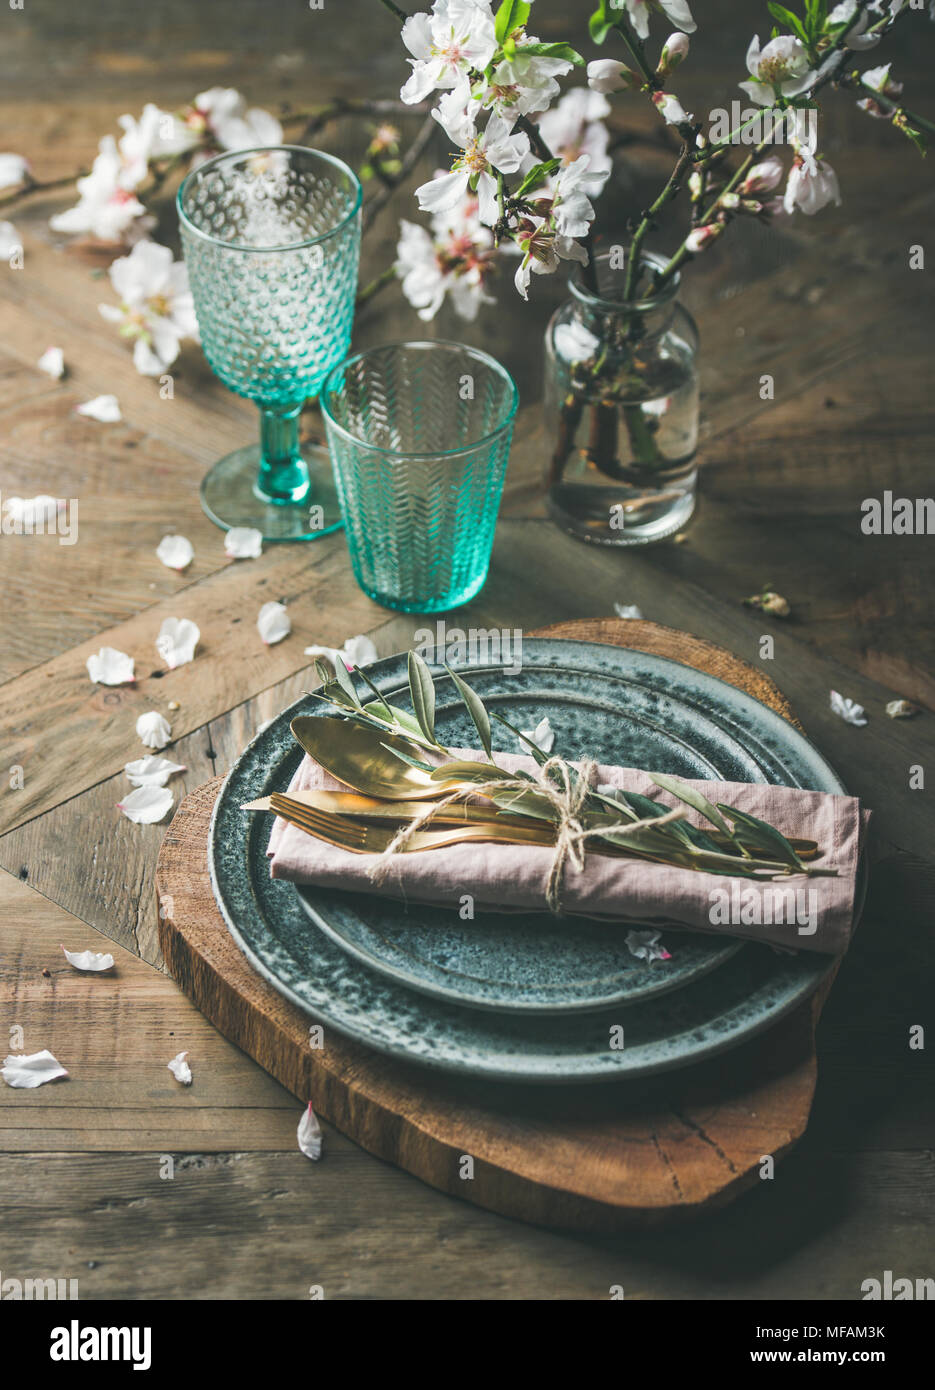 Spring Easter Table setting over vintage wooden background - Stock Image & Vintage Table Setting Easter Dinner Stock Photos \u0026 Vintage Table ...